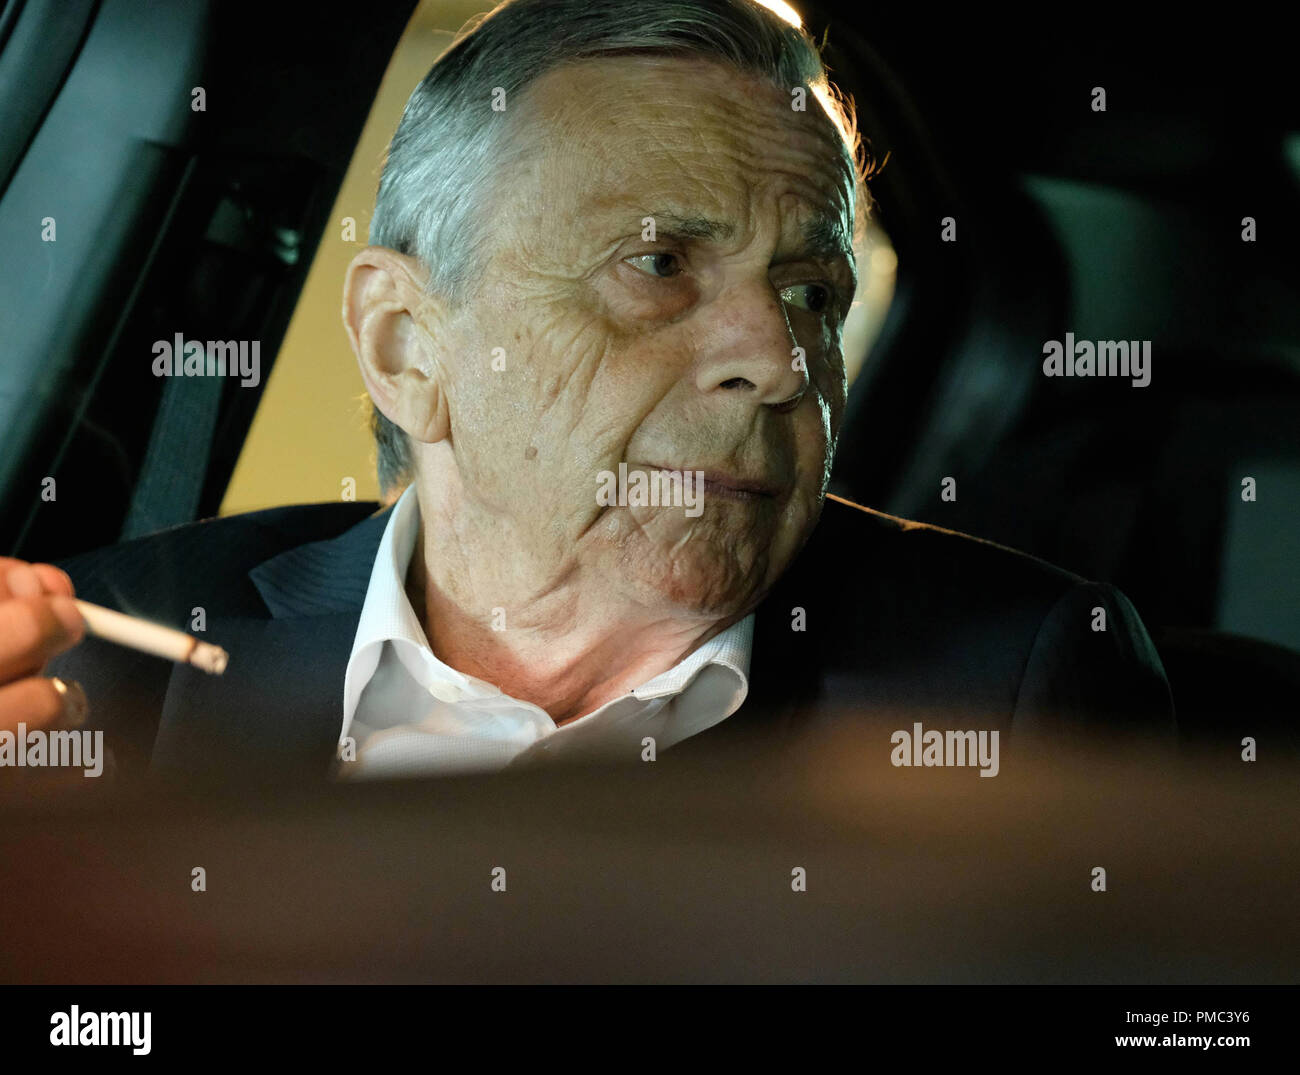 THE X-FILES:  Guest star William B. Davis in the 'My Struggle III' season premiere episode of THE X-FILES on Fox. © 2018 Fox Broadcasting Co. Cr: Robert Falconer/Fox - Stock Image